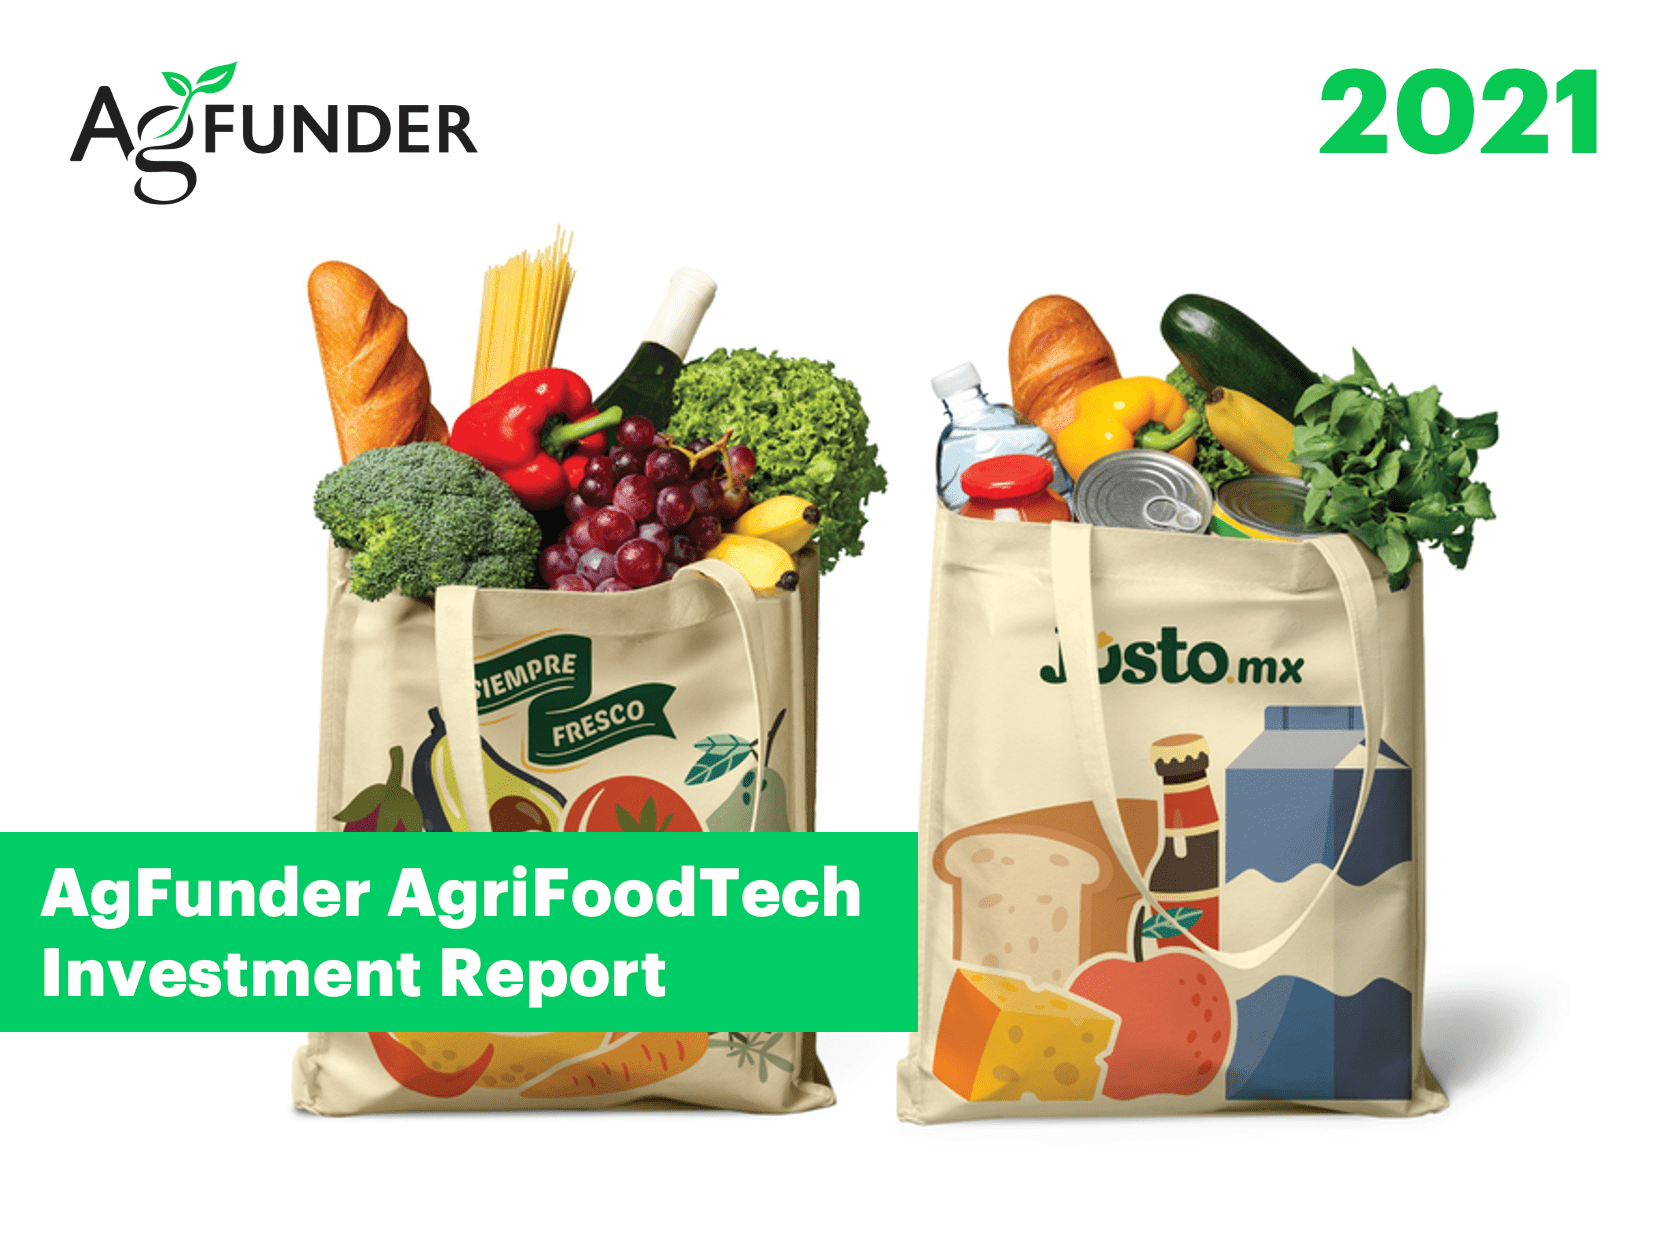 2021 AgFunder AgriFoodTech Investment Report